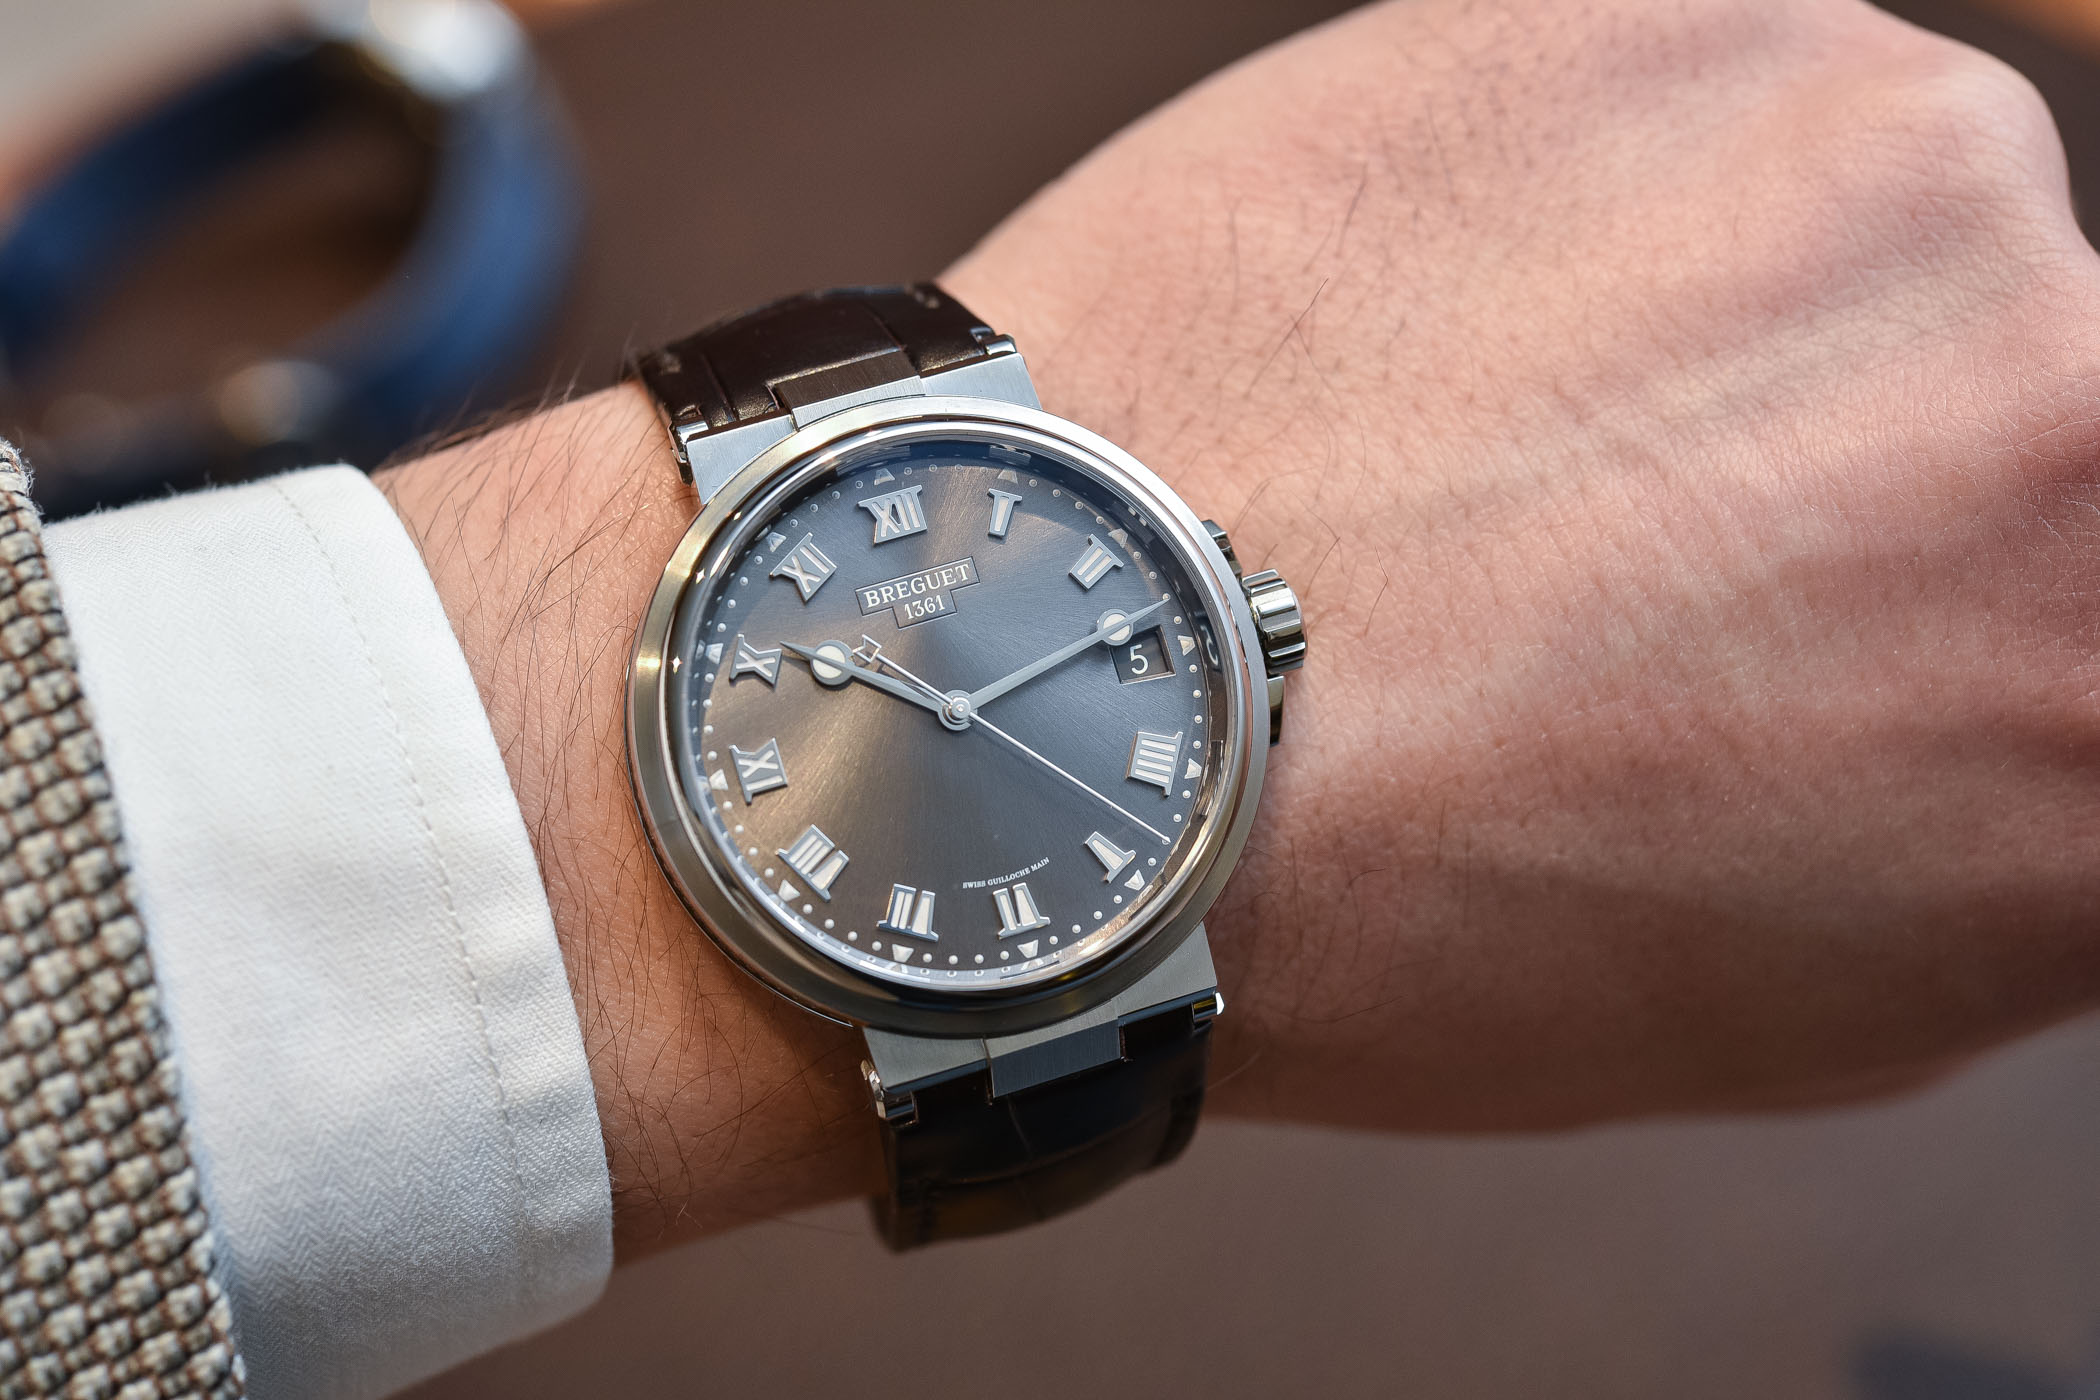 Breguet Marine 5517 Time-and-Date Baselworld 2018